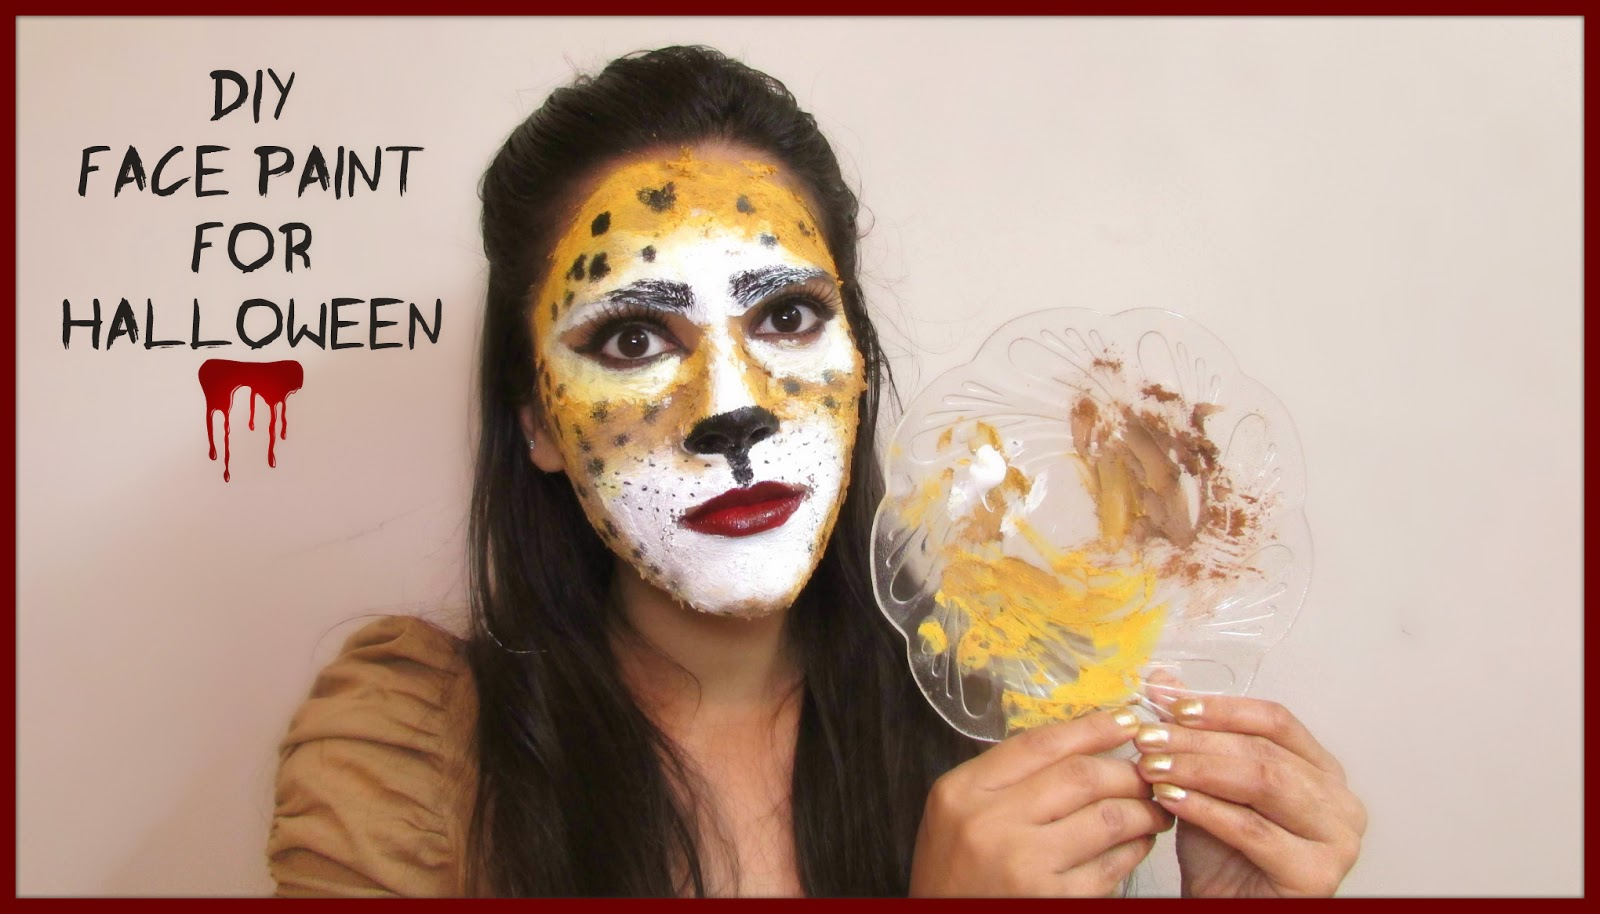 chemical free face paints, DIY, DIY face paints for halloween, face paints, facepaints for halloween, halloween, halloween face paints, home made face paints, home-remedies, Hoalloween Pumpkins, Halloween Decorations, Fall Decorations, DIY fall decorations, DIY Halloween Decorations, Halloween decorations, DIY ideas for fall, DIY ideas for halloween